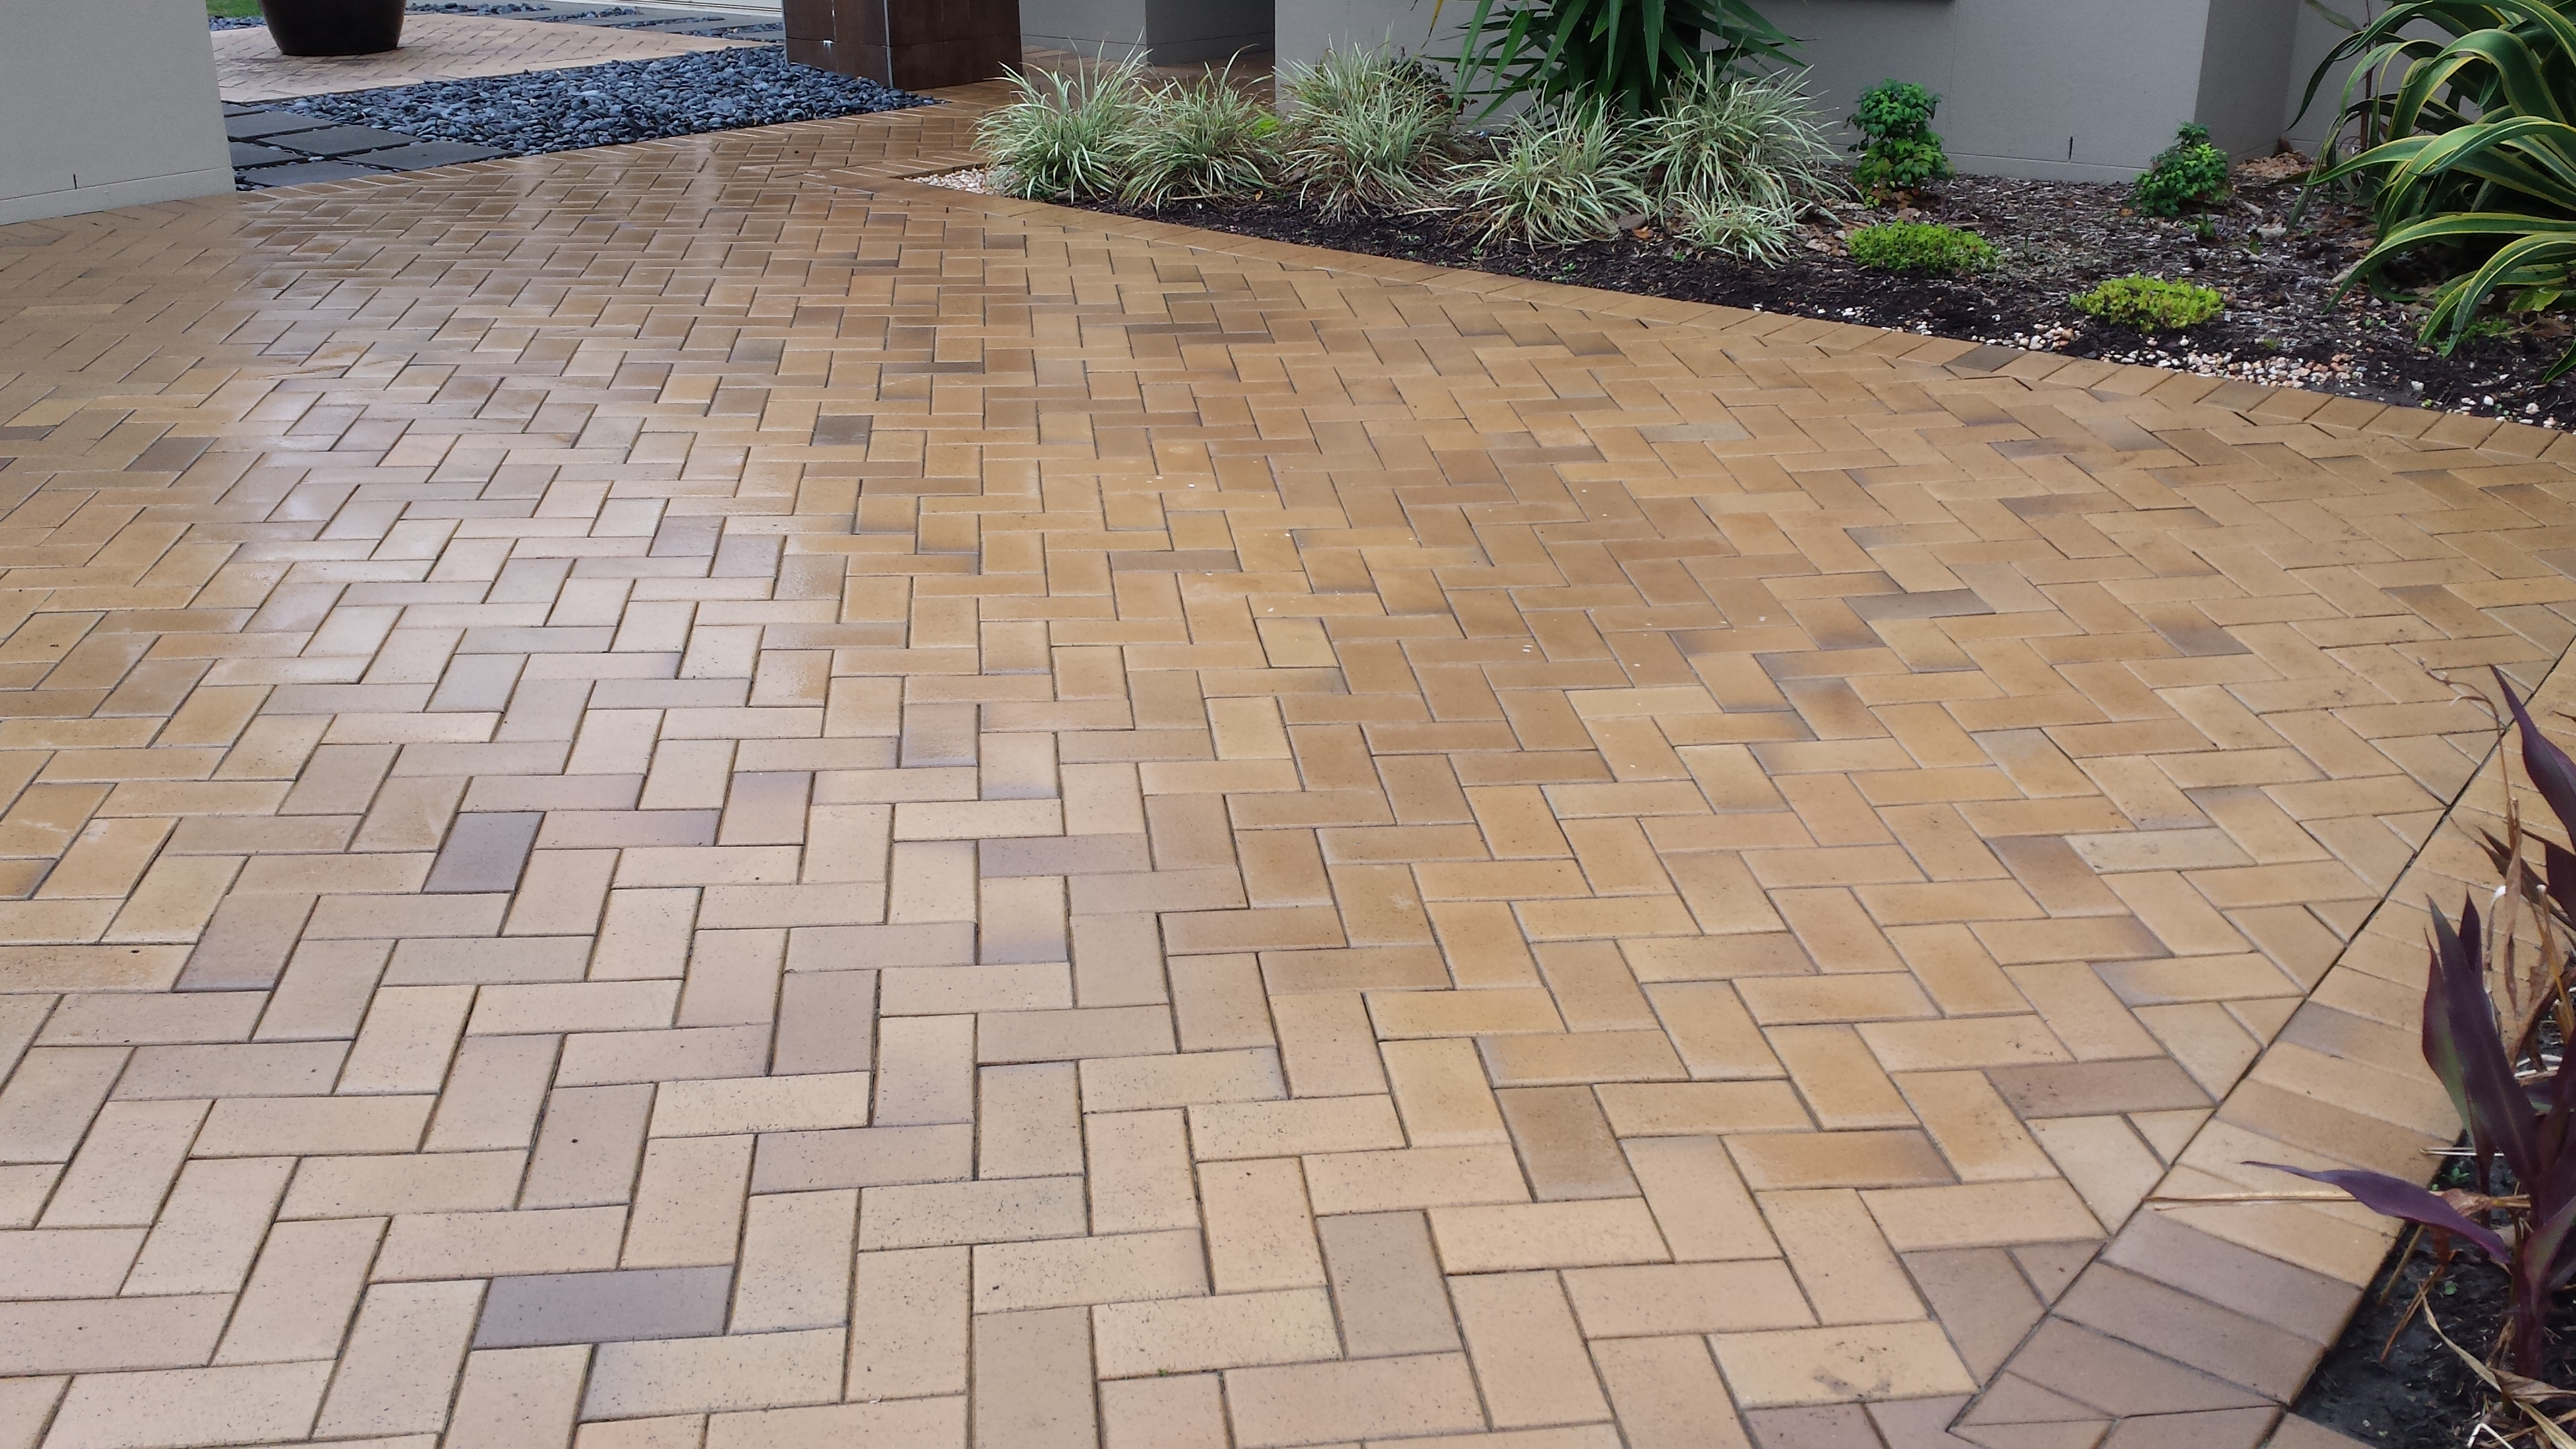 Queensland paving cleaning services